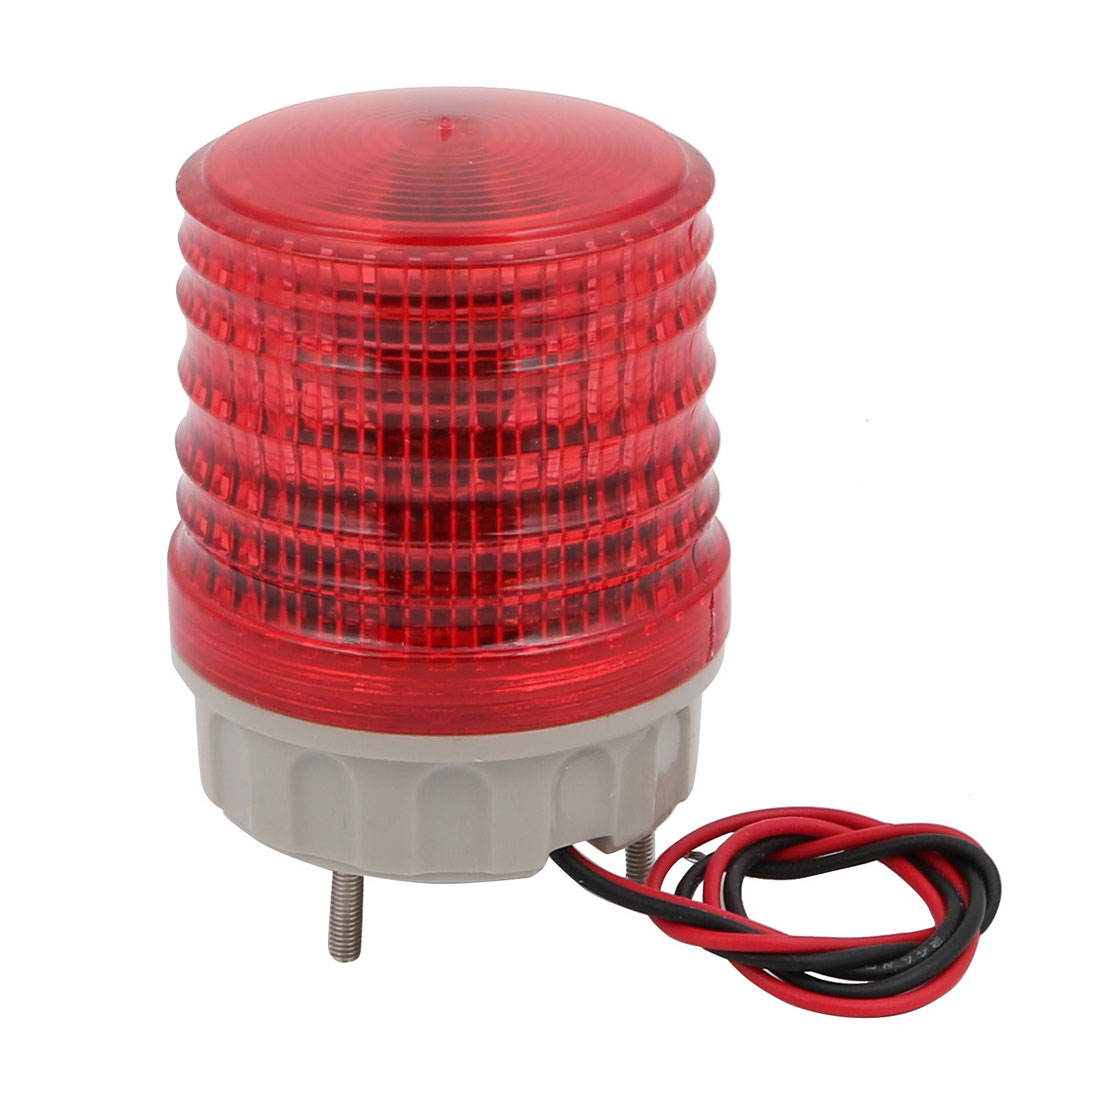 DC 12V Buzzer Sound Rotating Industrial Signal Tower Warning Light Red TB-5051